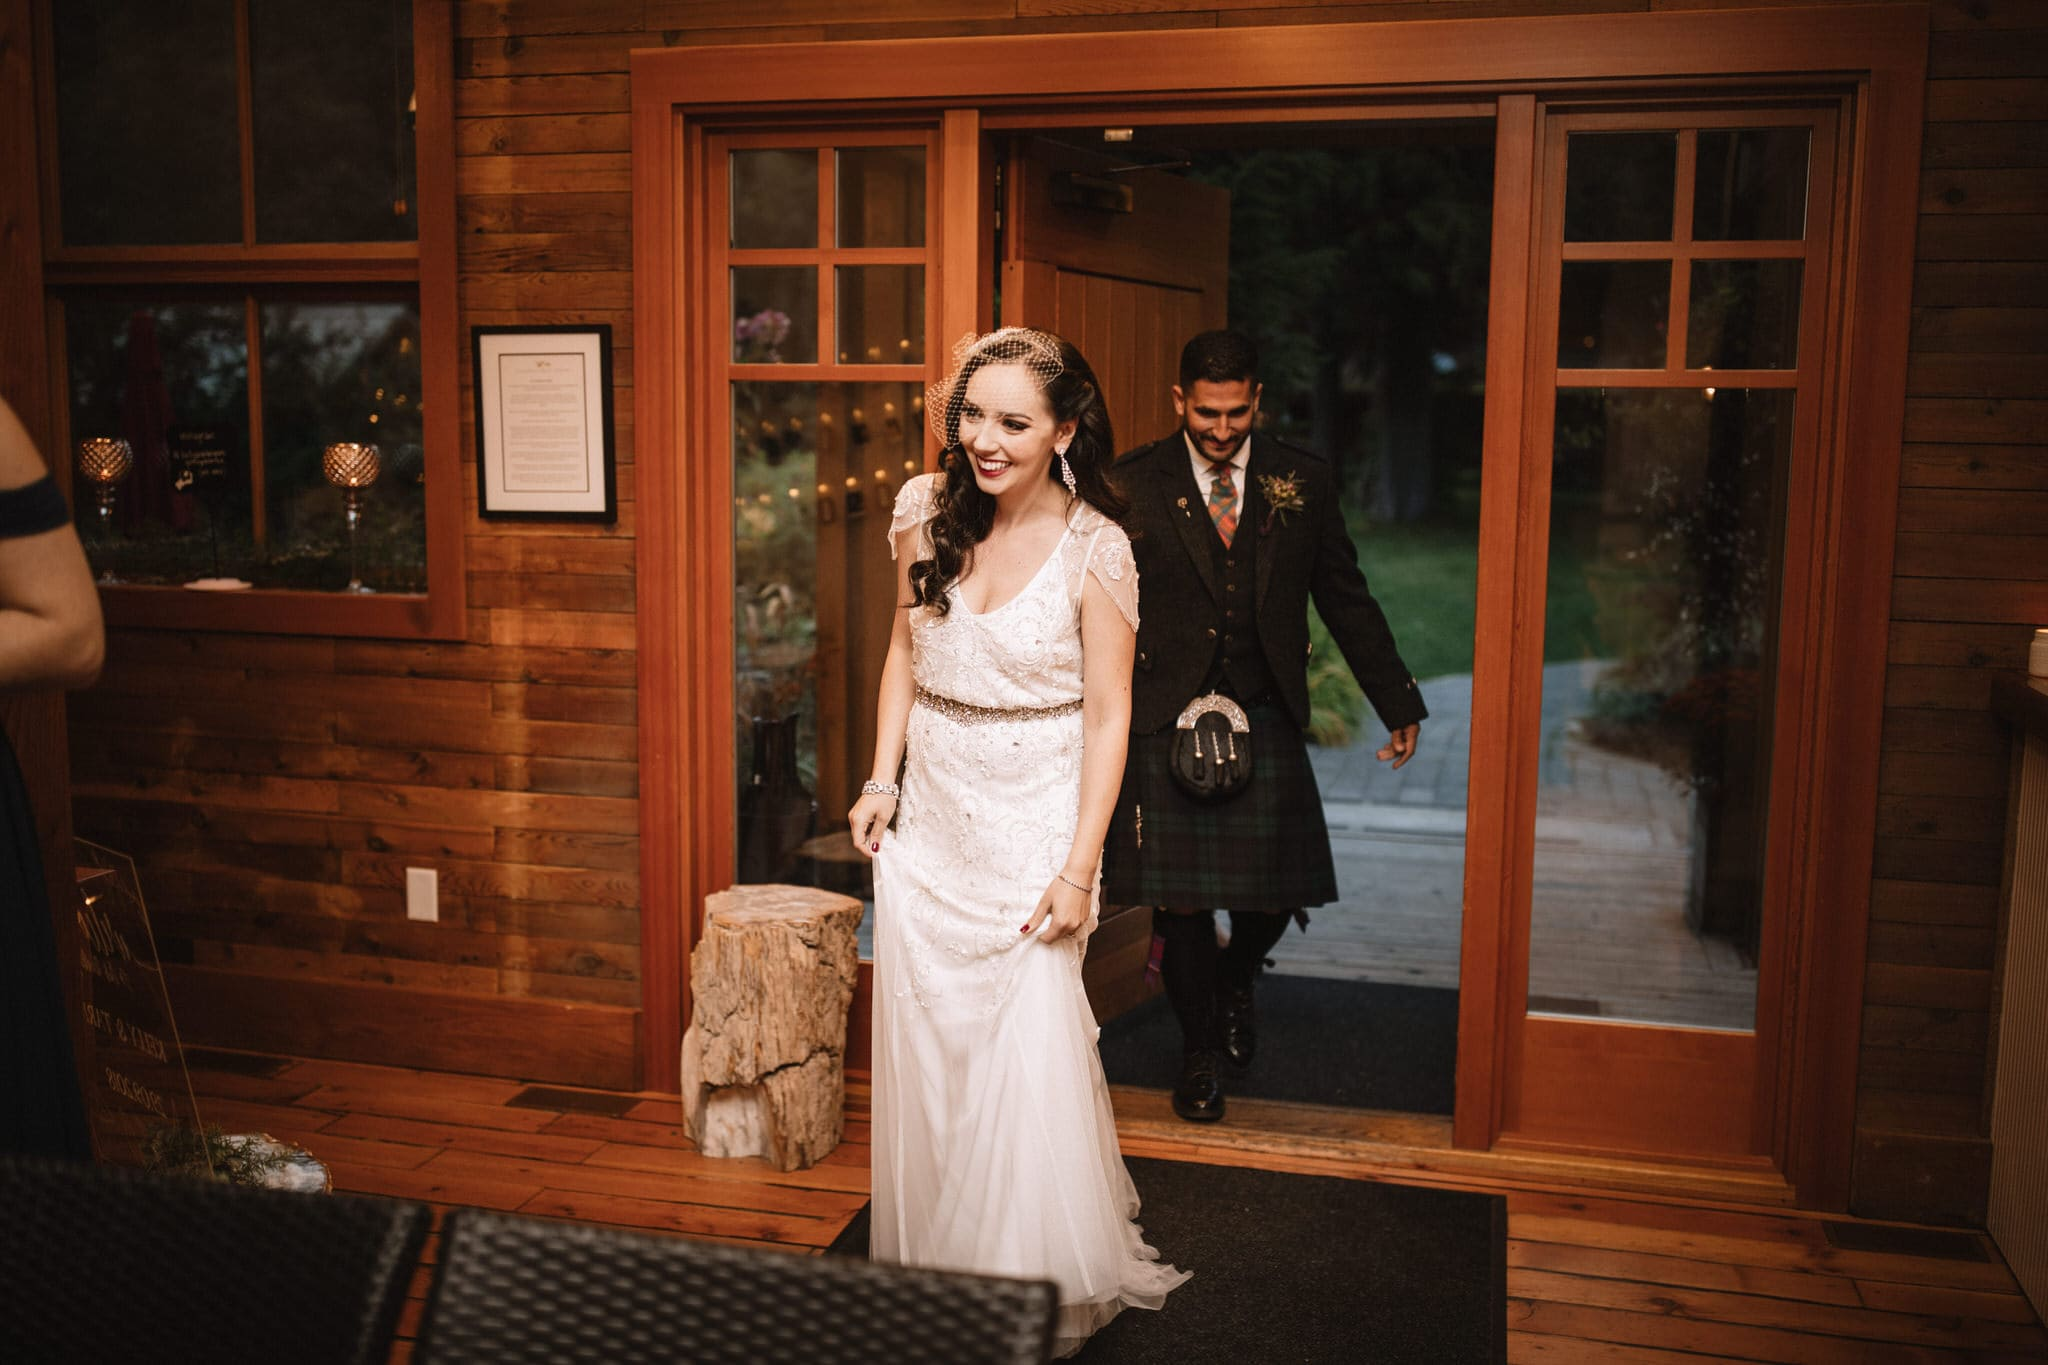 Bride and groom arrive to the wedding reception at Brew Creek Centre Whistler. Destination wedding photographer Brent Calis.